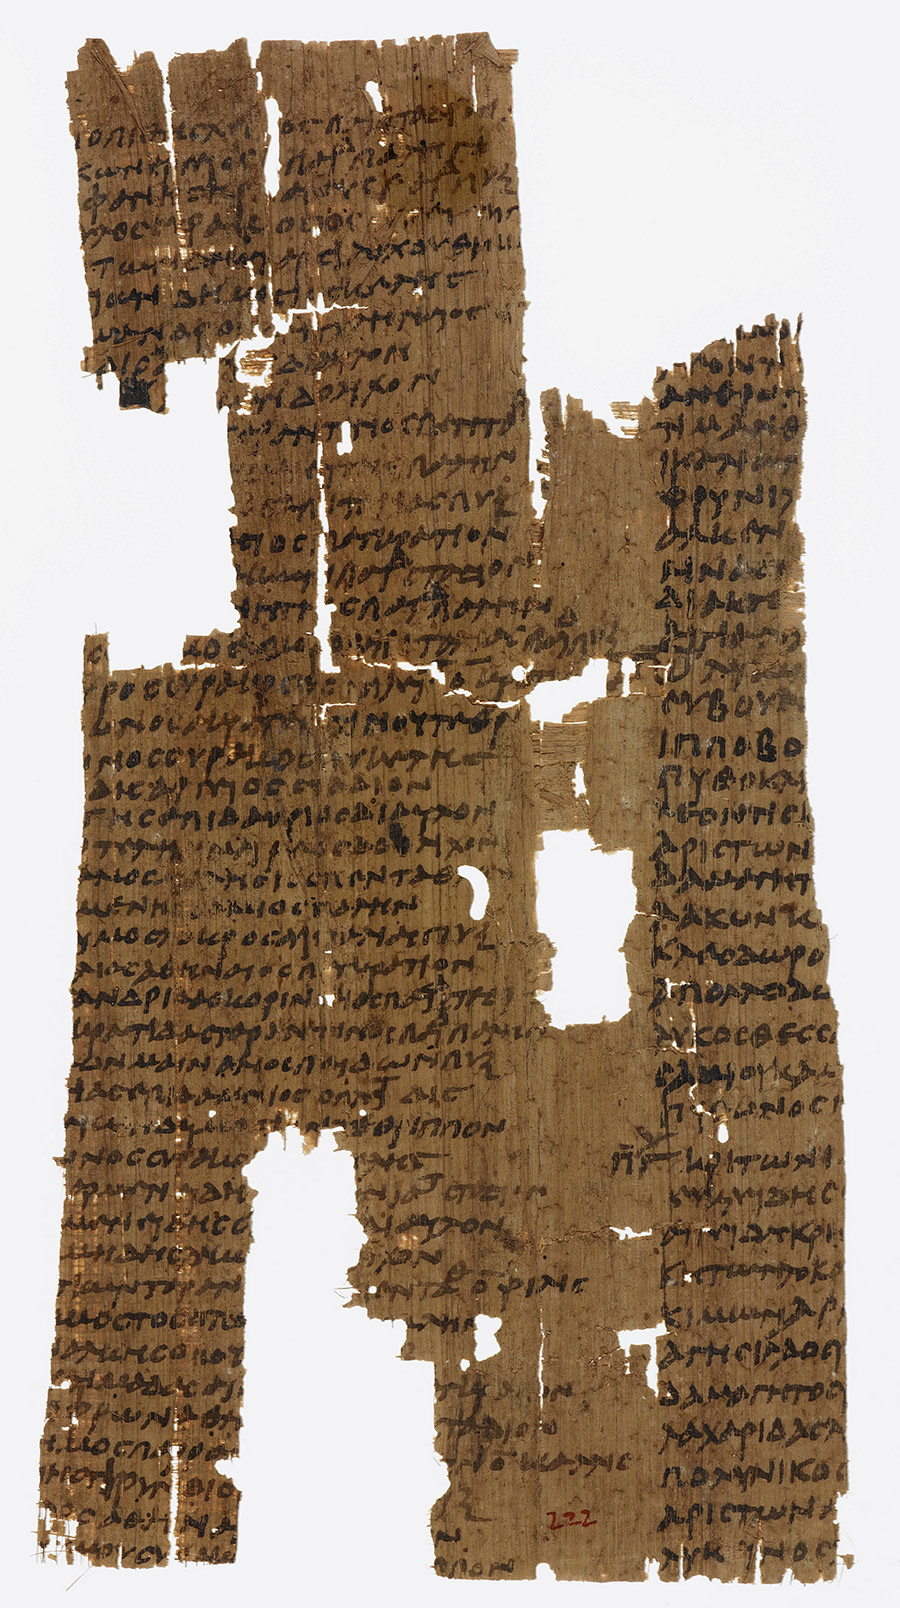 Torn papyrus with names in Greek listing winners of Olympic Games